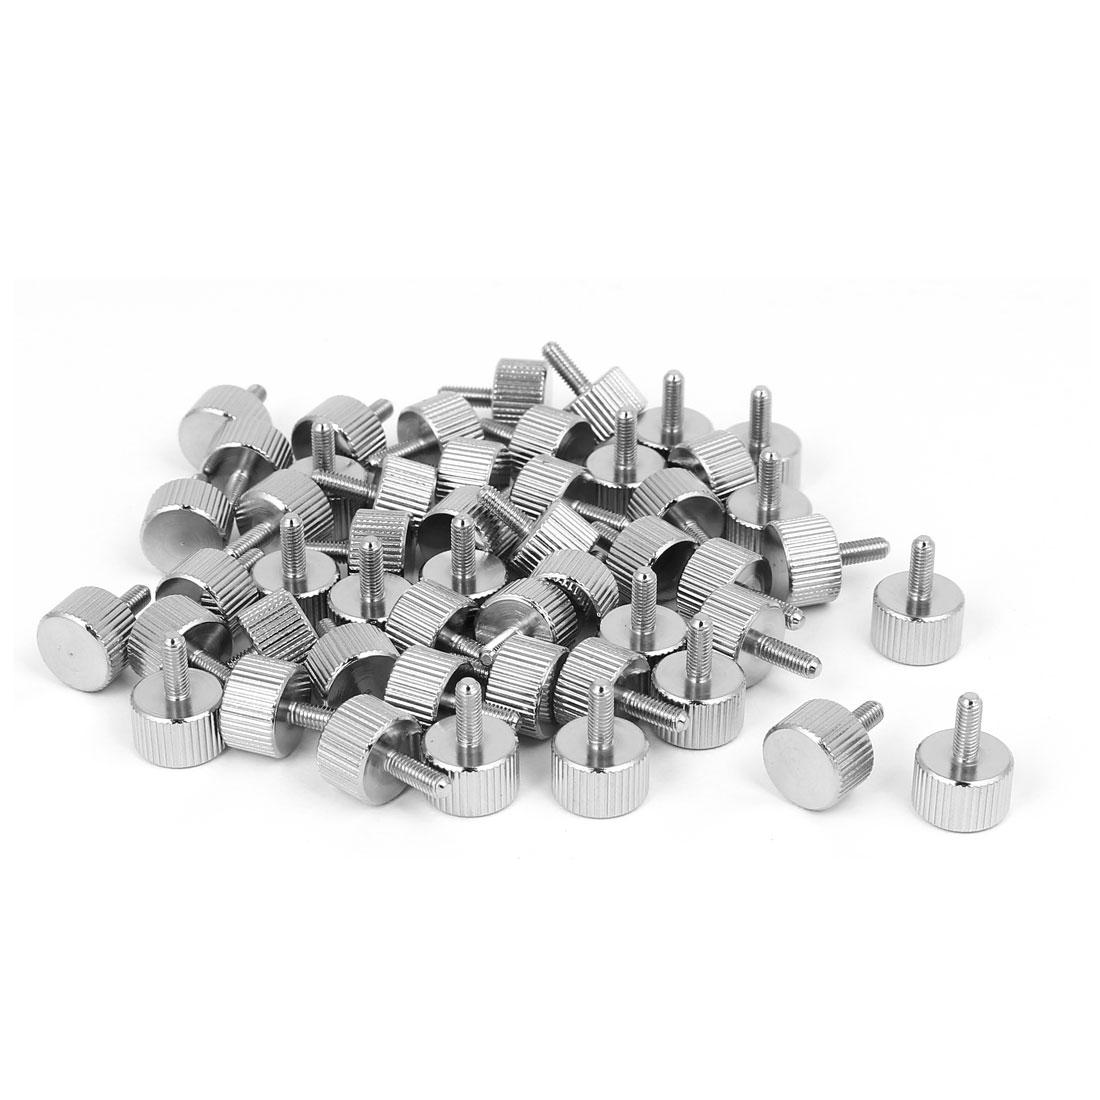 M3x8mm Nickel Plated Flat Head Knurled Thumb Screw 50pcs for Computer PC Case